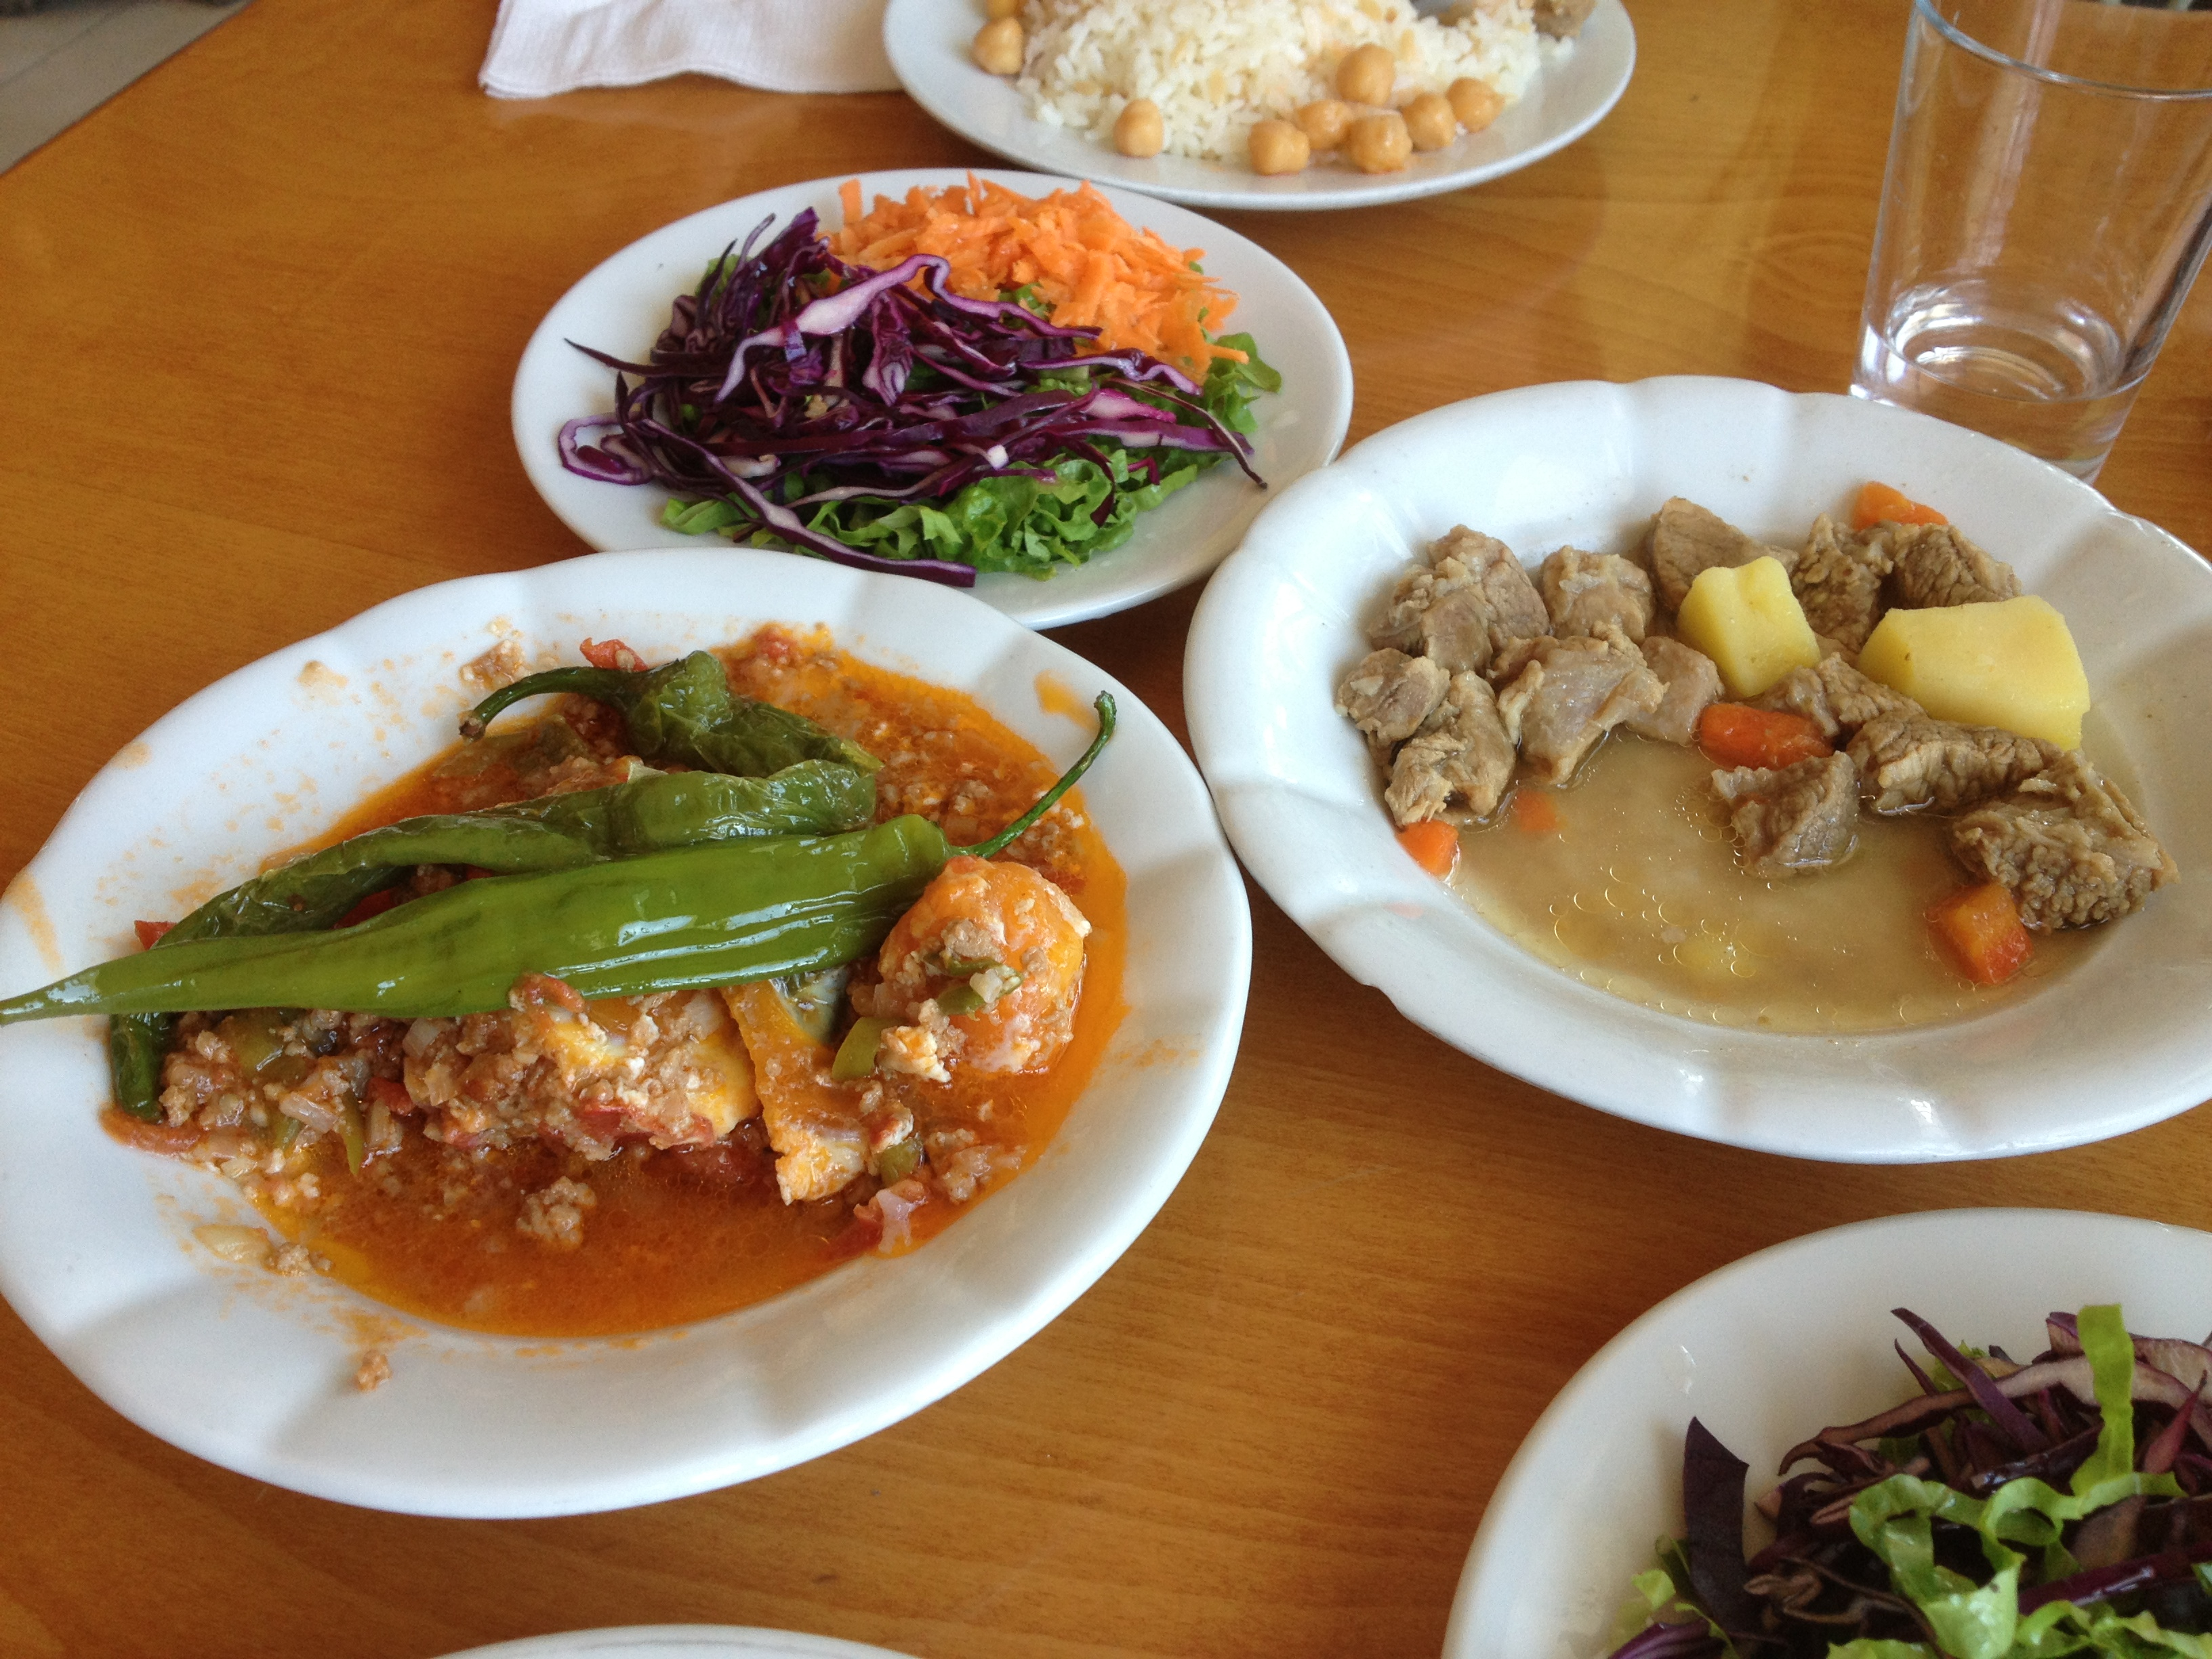 Our lunch at the truck drivers' restaurant